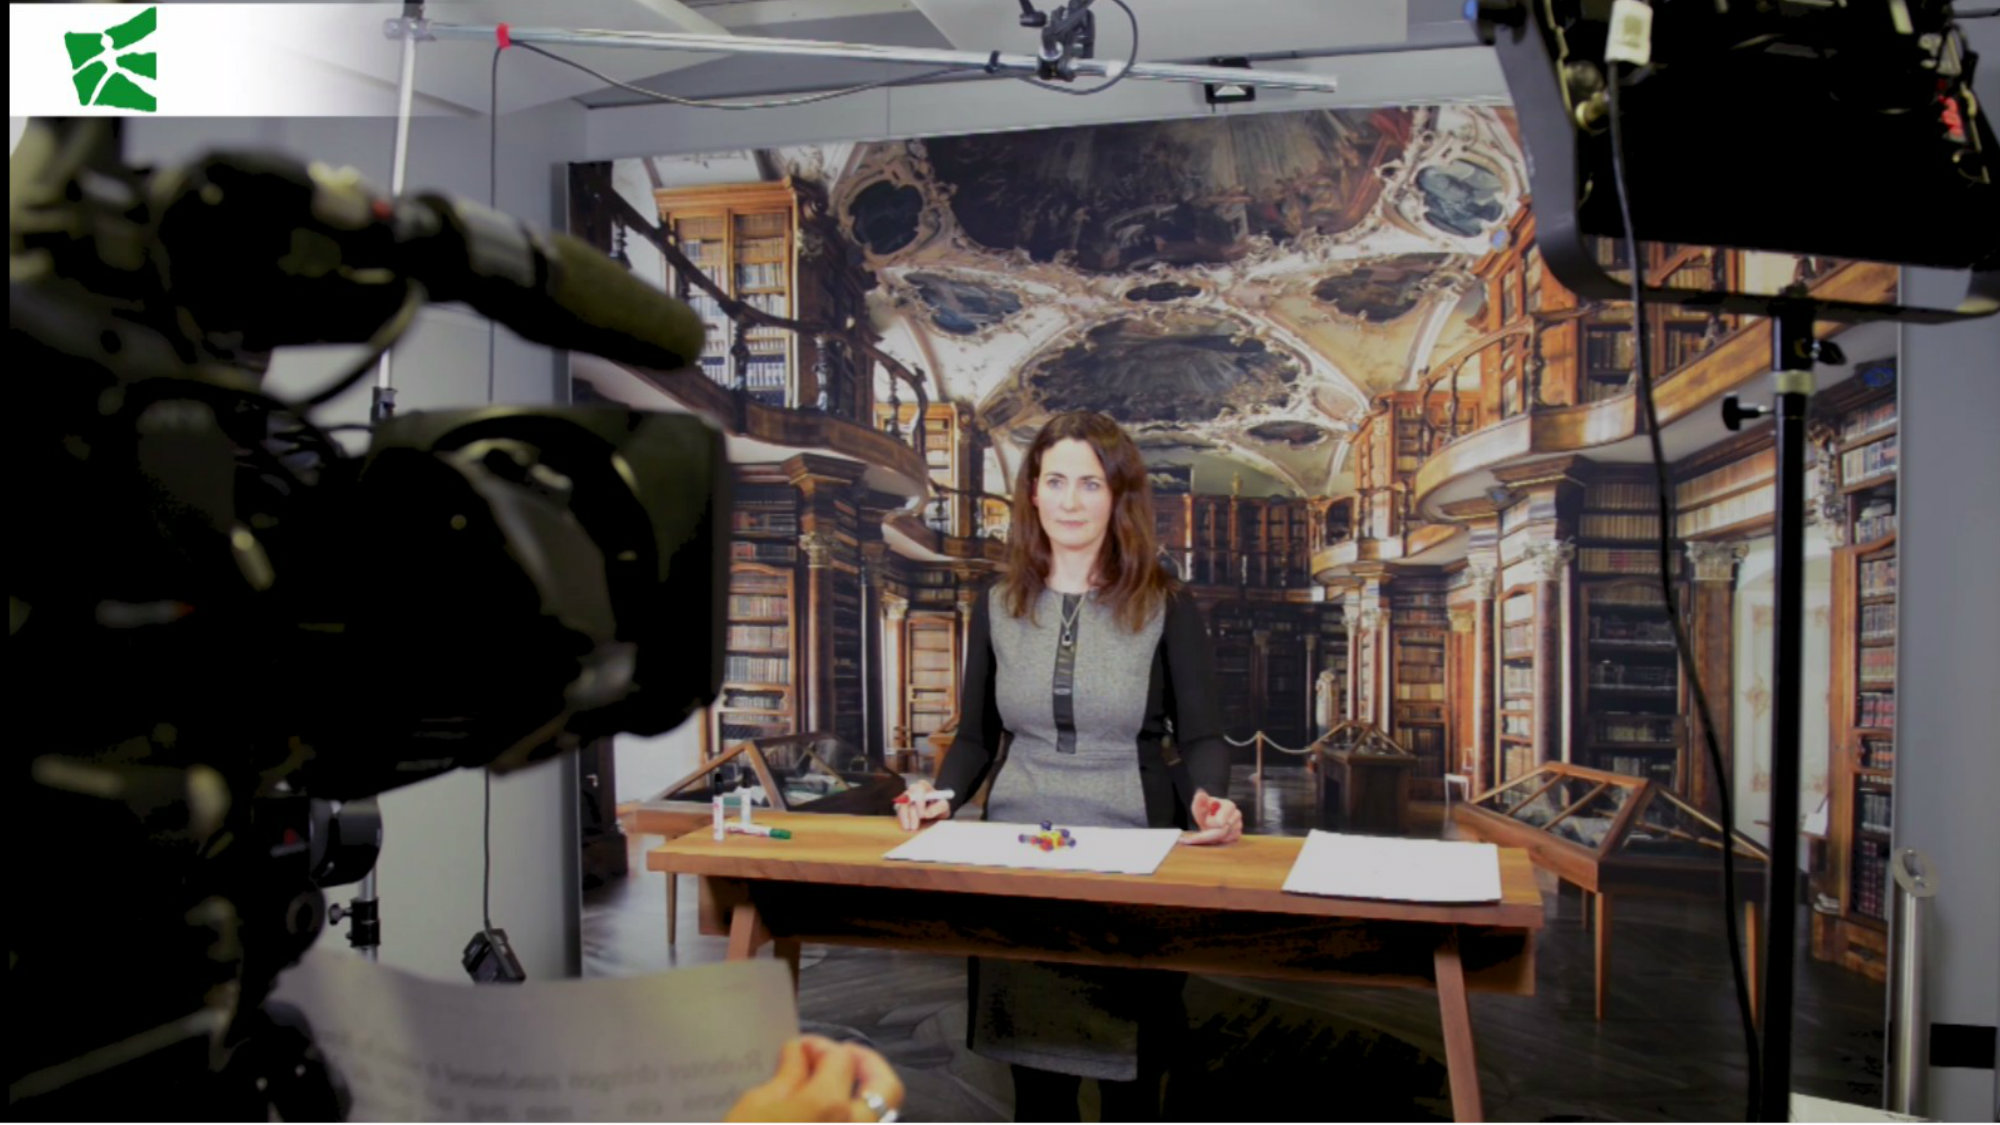 Knowledge Bank: Prof. Dr. Isabelle Wildhaber on robot law. Video.